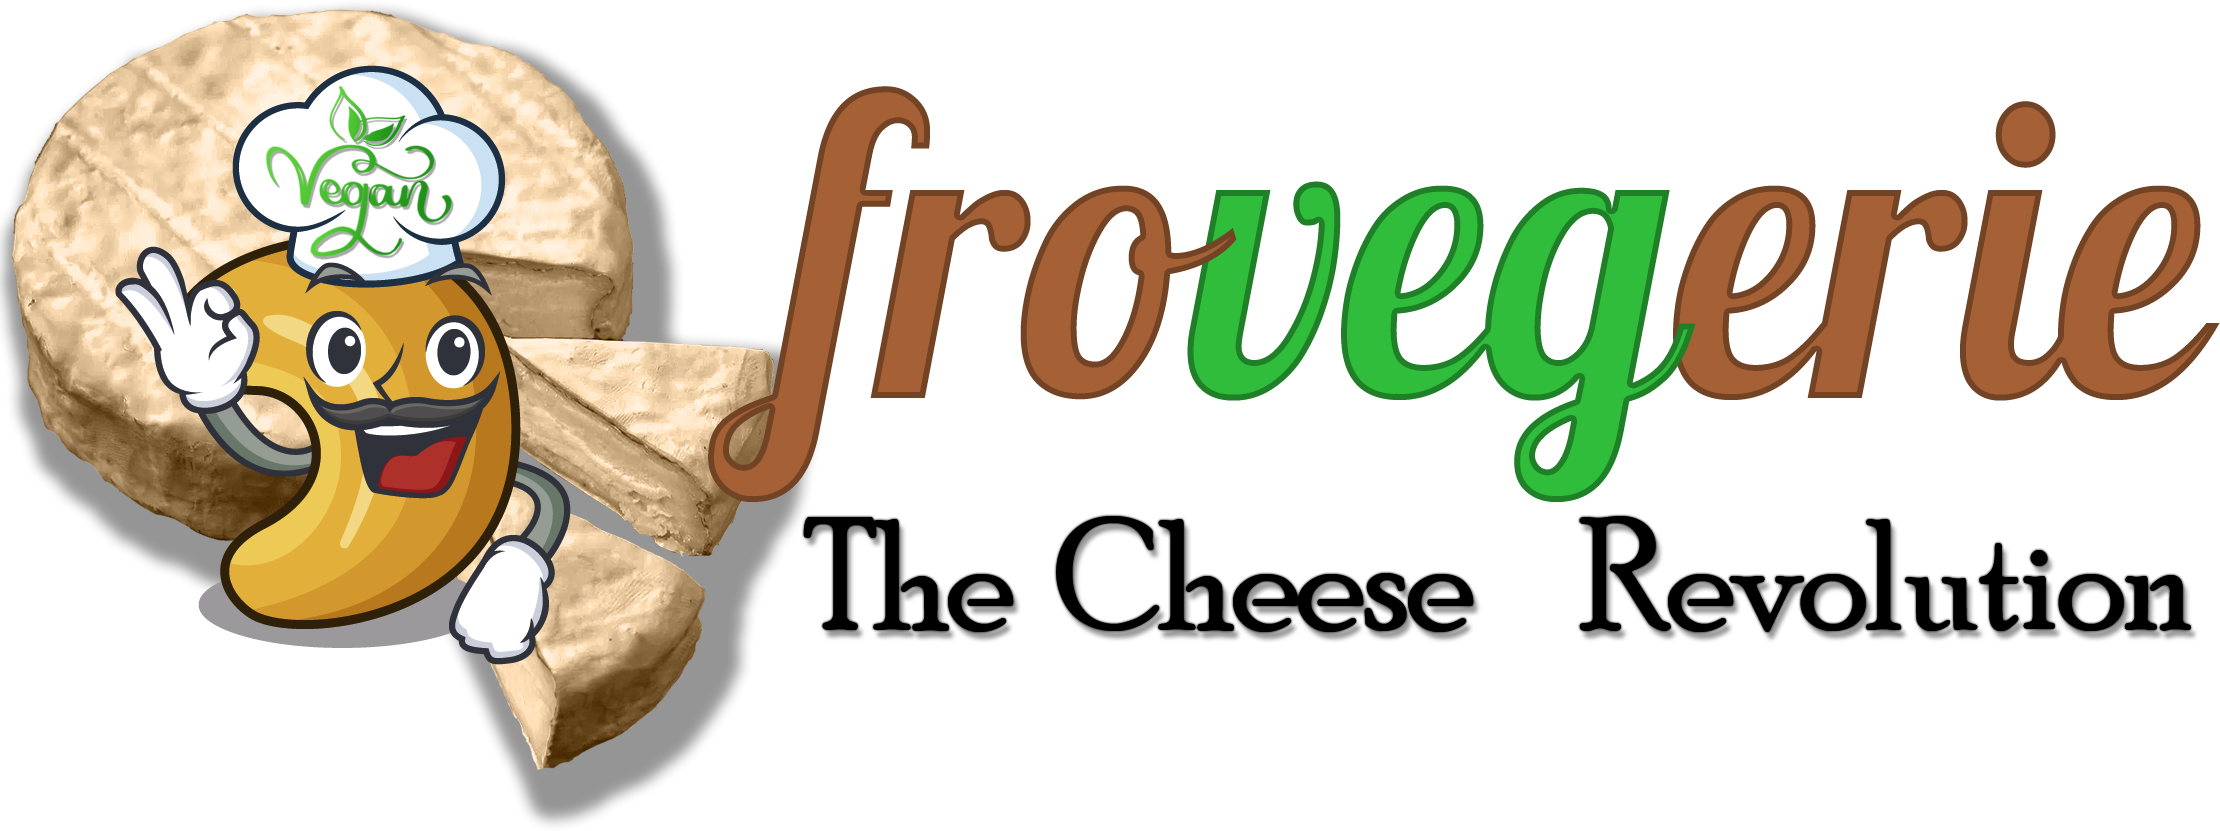 Frovegerie The Cheese Revolution